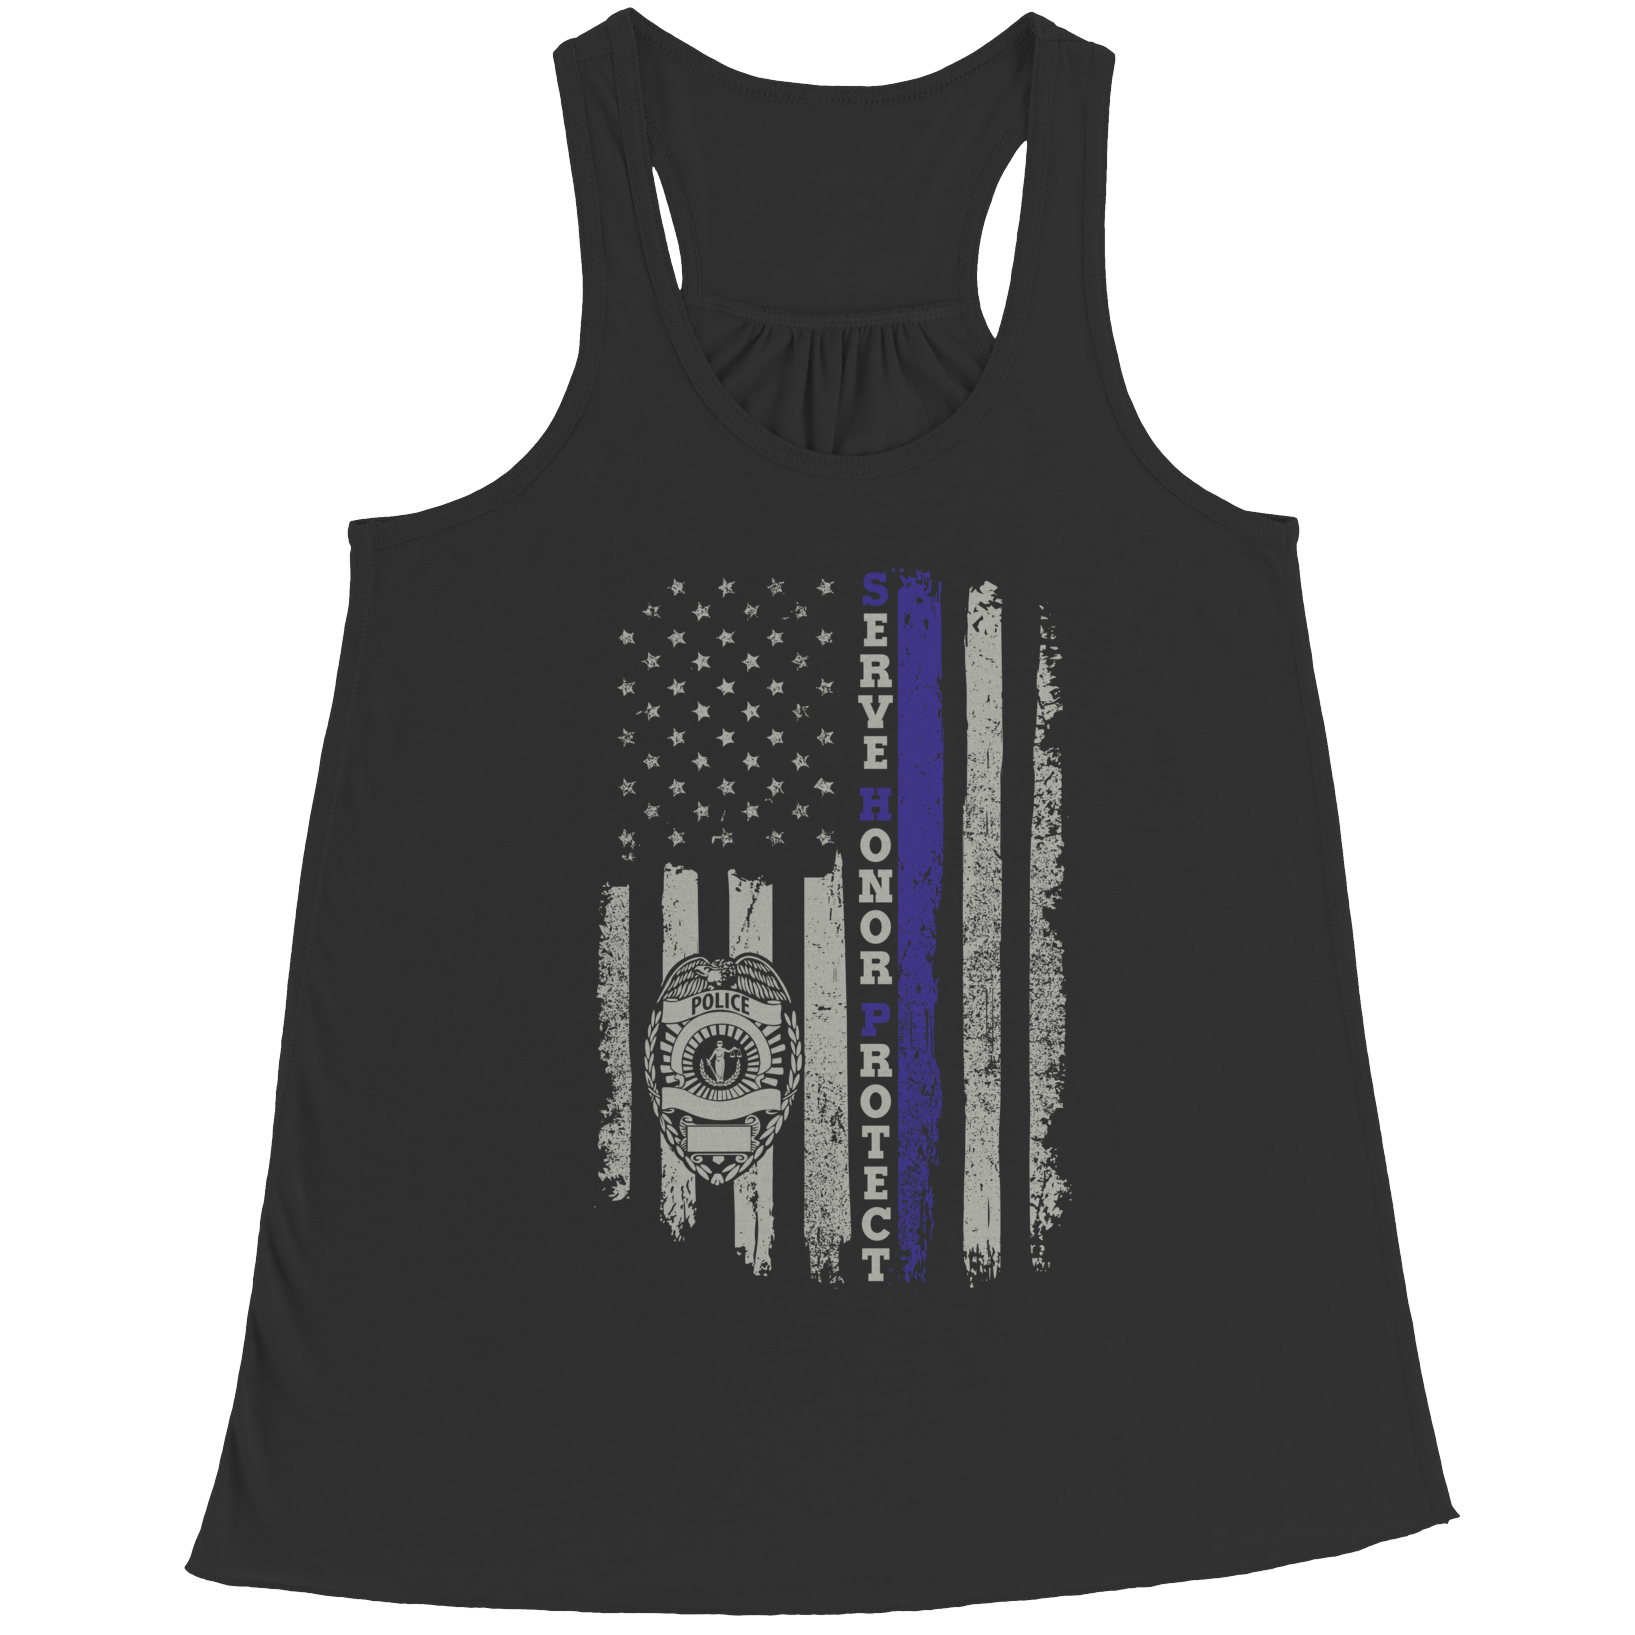 Vector tank vest top. Limited edition serve honor